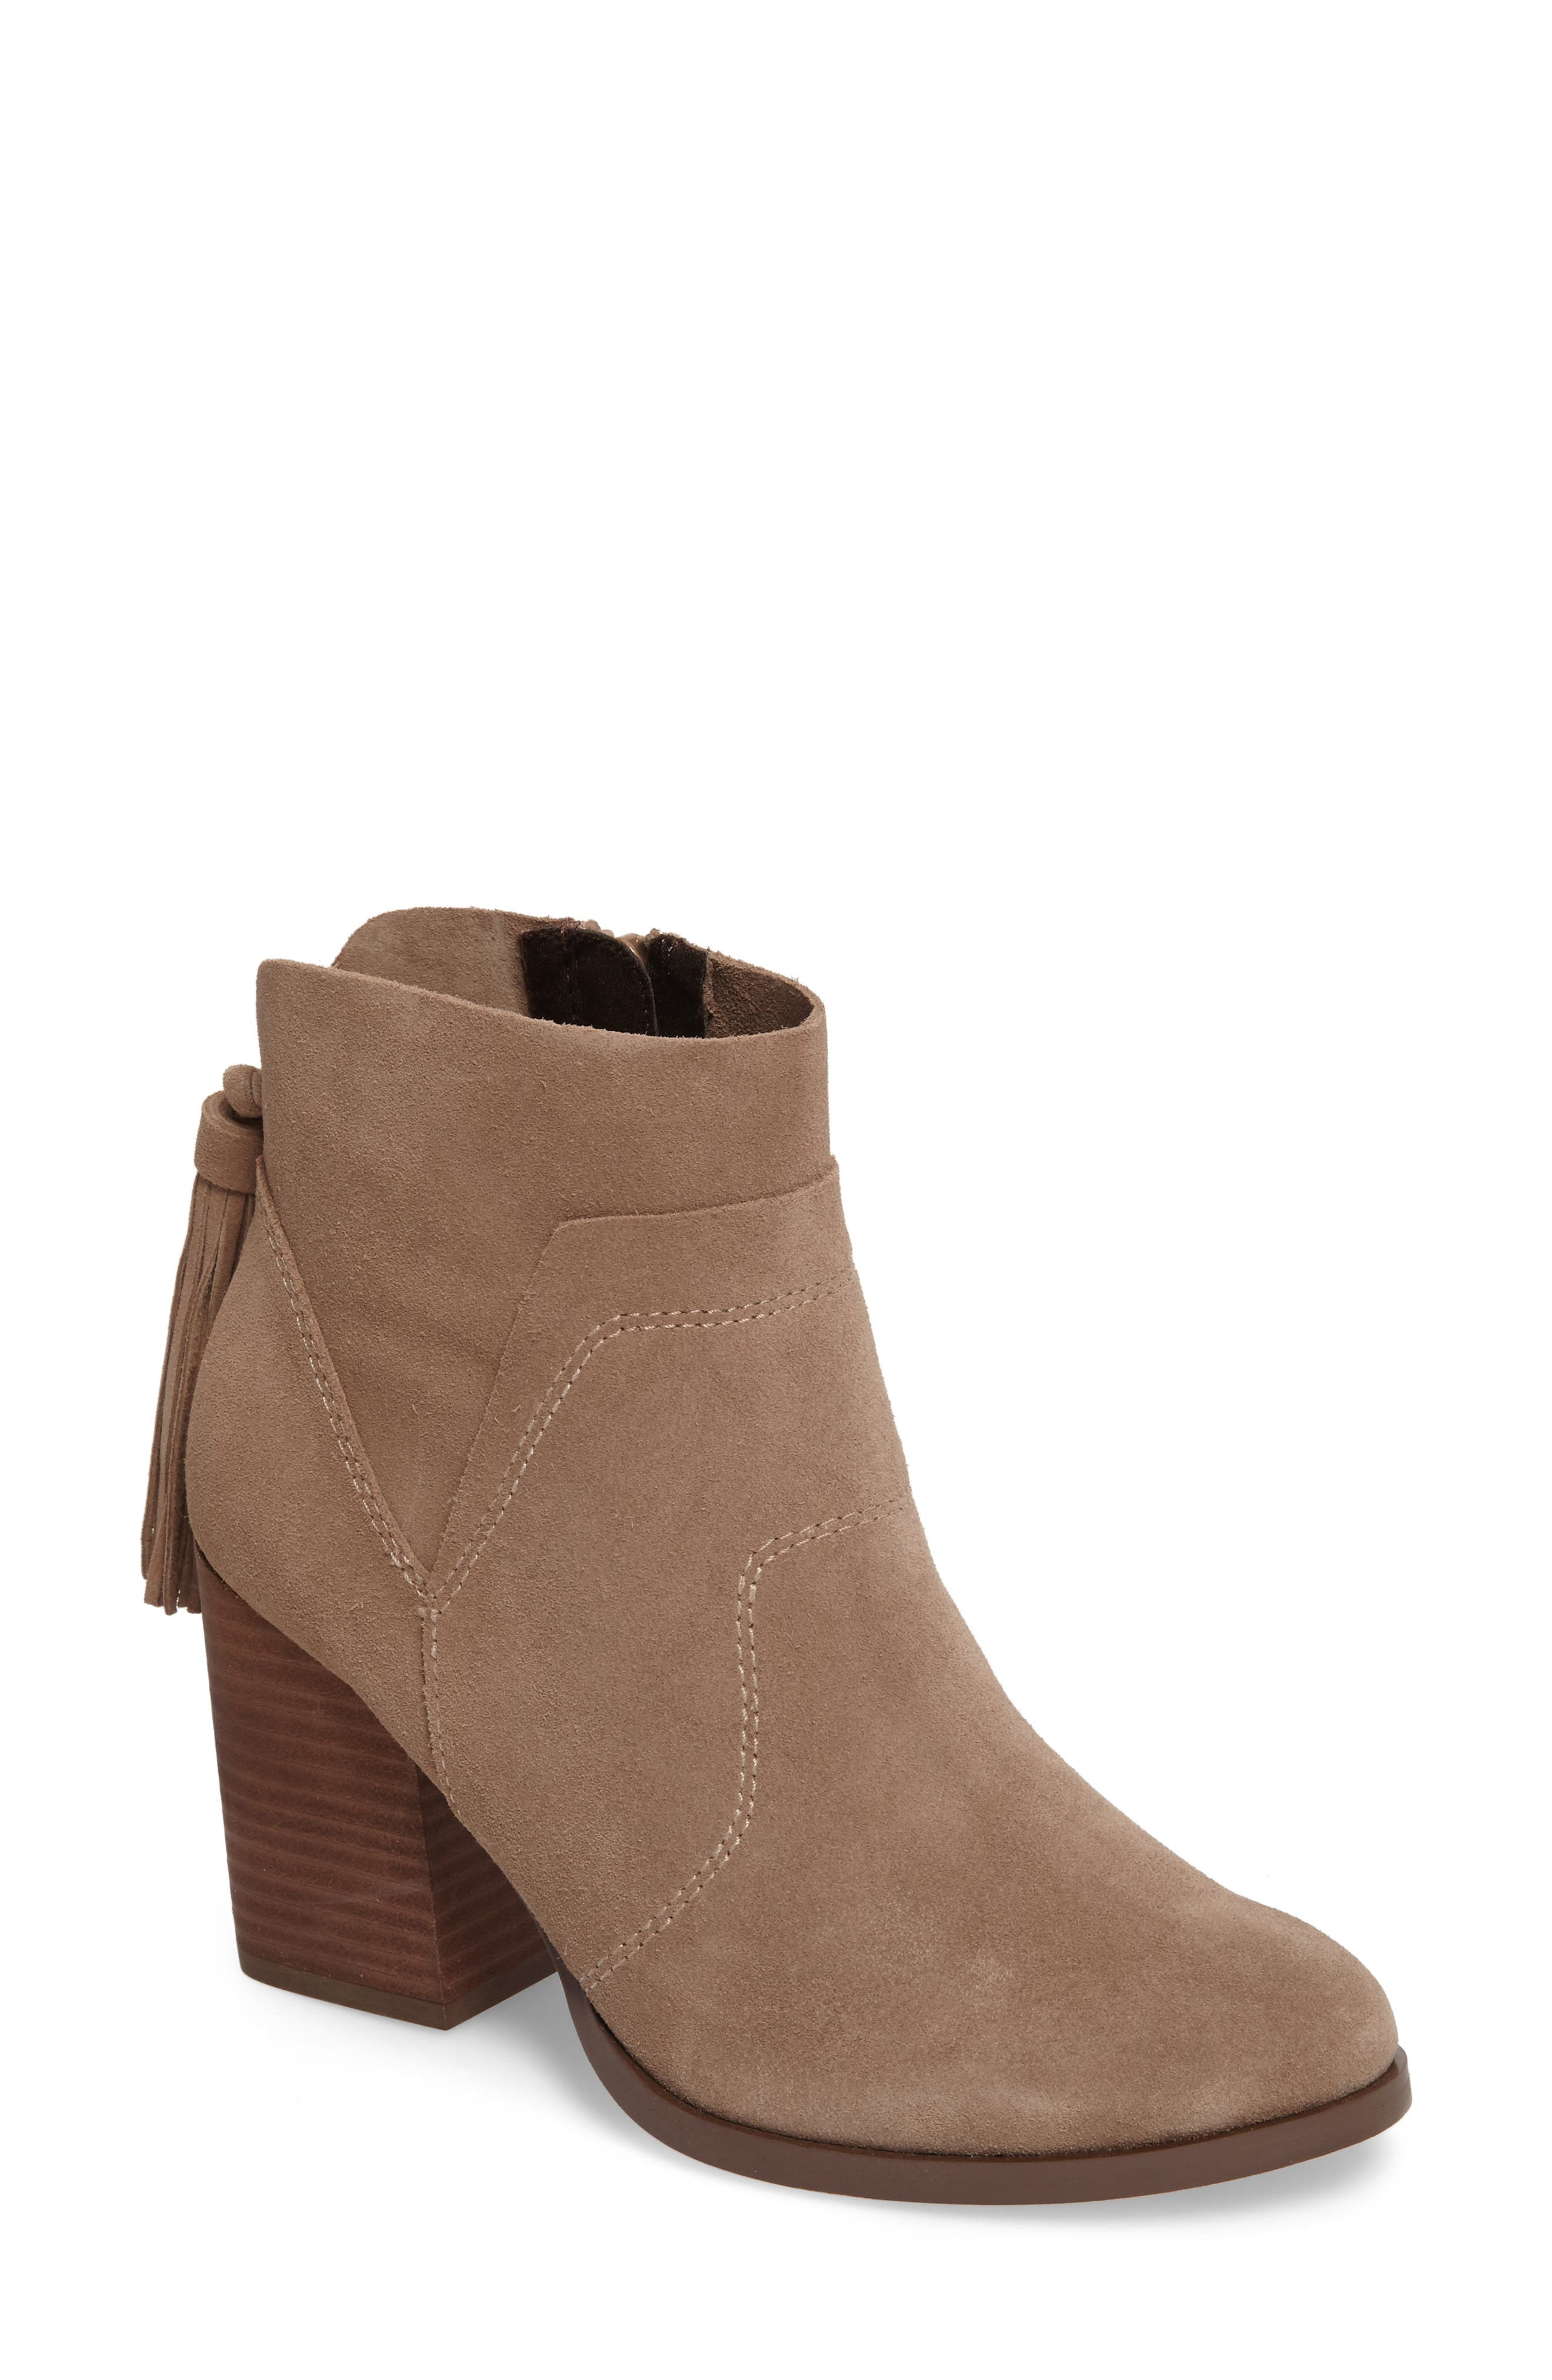 Ambrose Bootie,                             Main thumbnail 1, color,                             Taupe